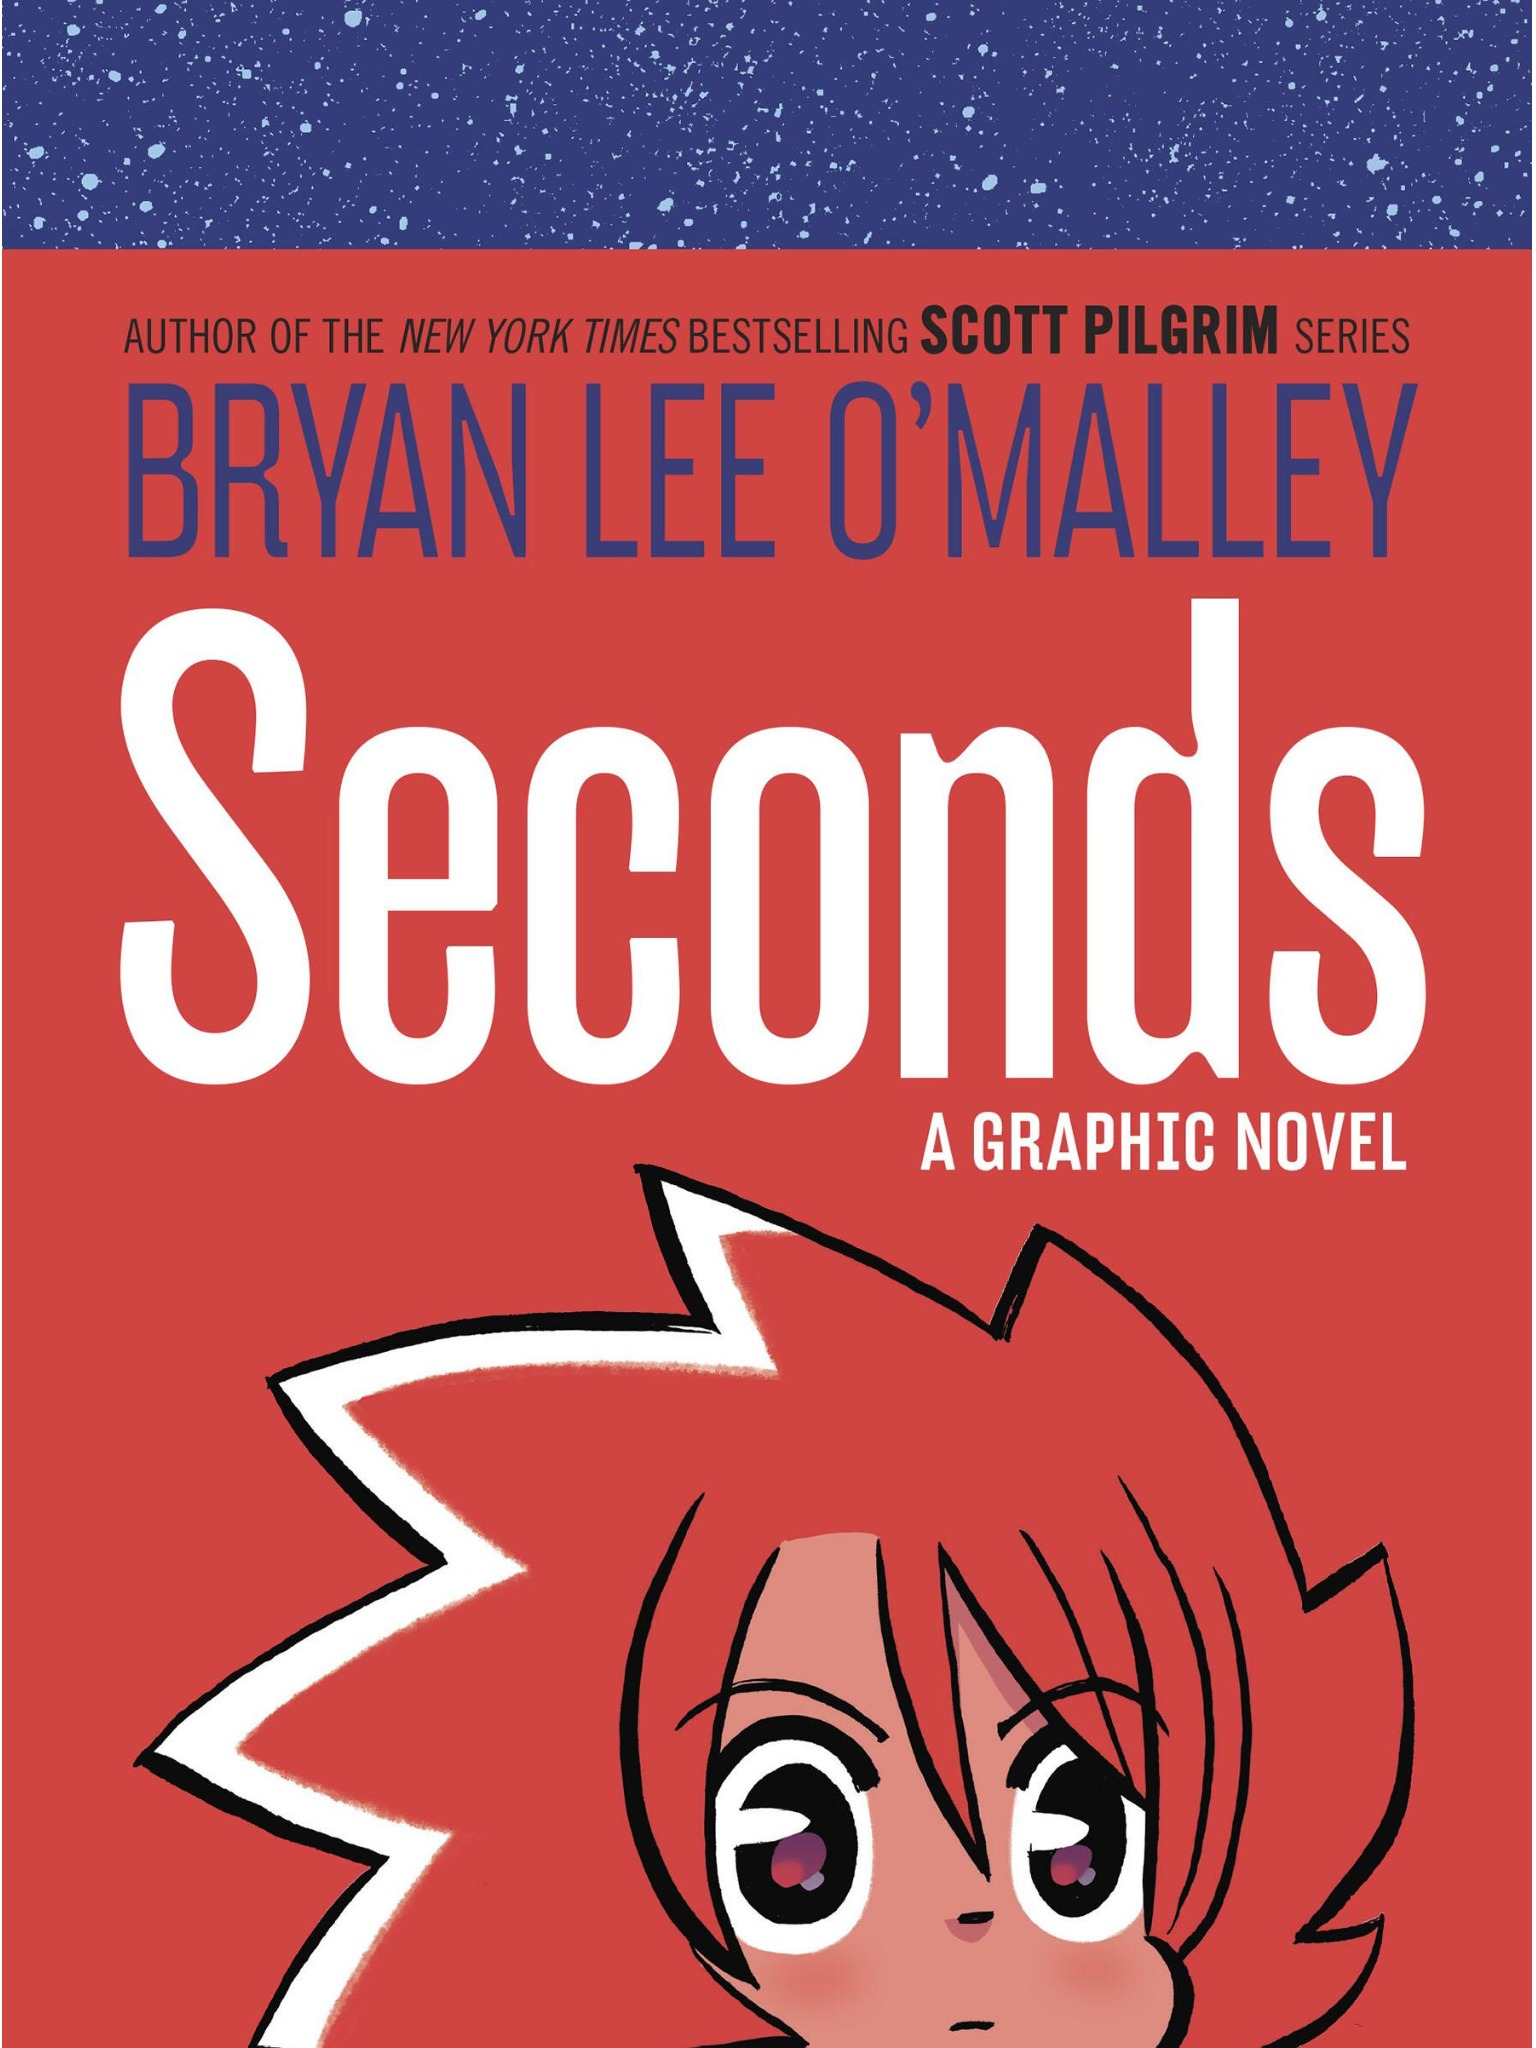 Read online Seconds comic -  Issue # Full - 1